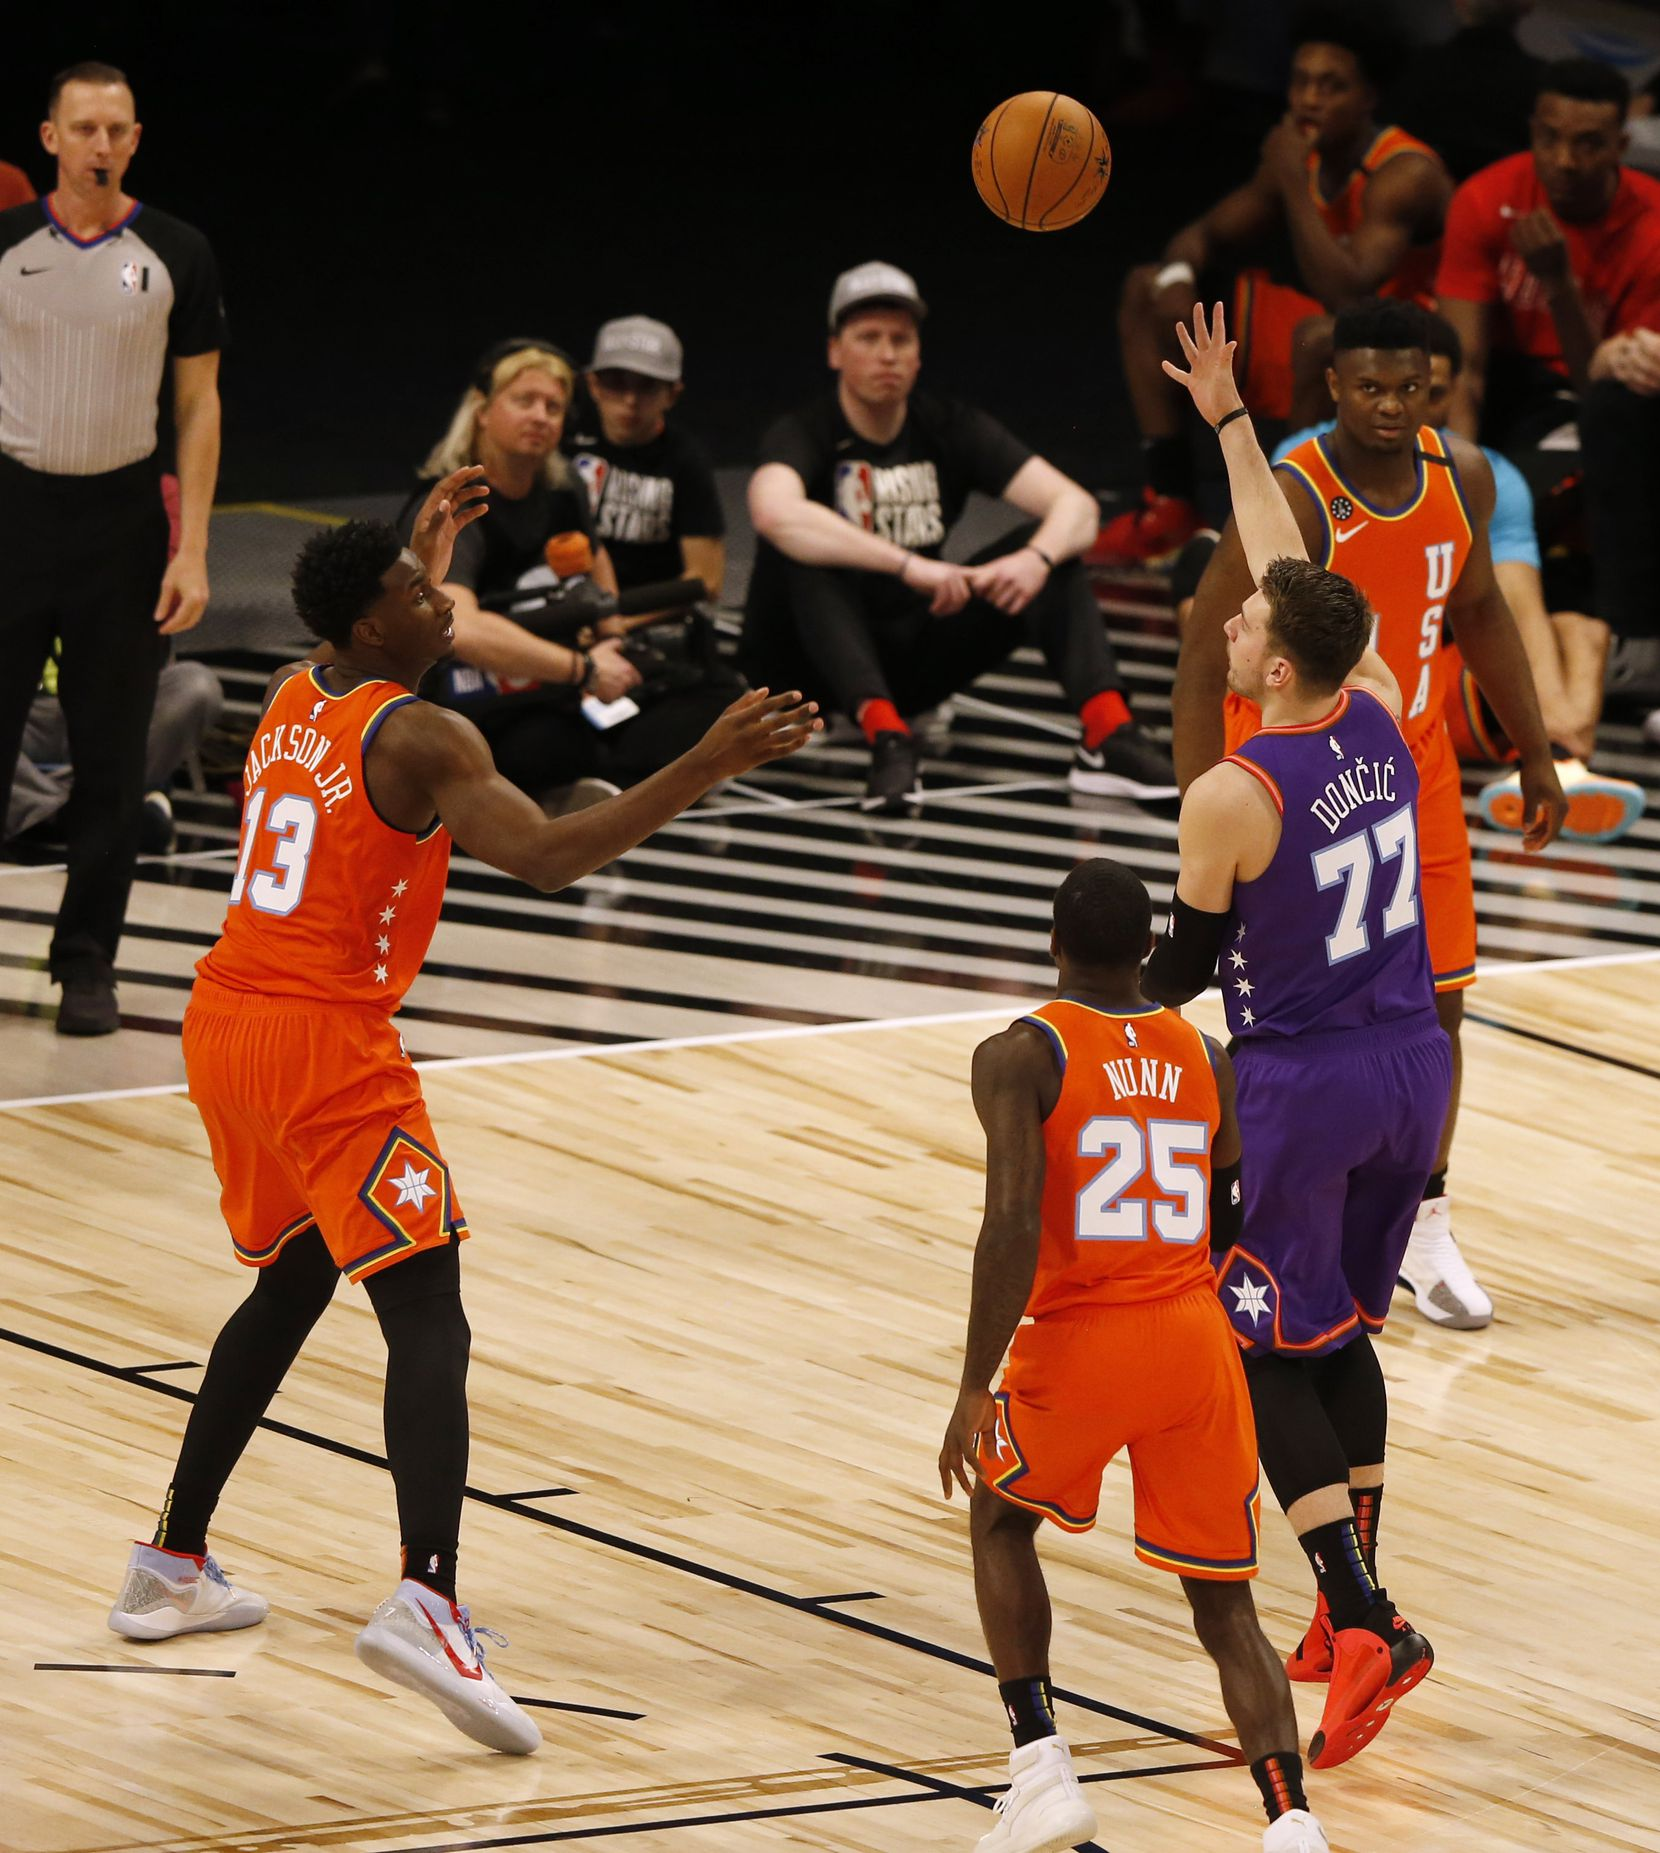 World Team and Dallas Maverickcks Luka Doncic (77) passes the ball in front of USA Team and Memphis Grizzlies Jaren Jackson Jr. (13) during the first half of play of the NBA Rising Stars game during the NBA All-Star 2020 at United Center in Chicago on Friday, February 14, 2020.